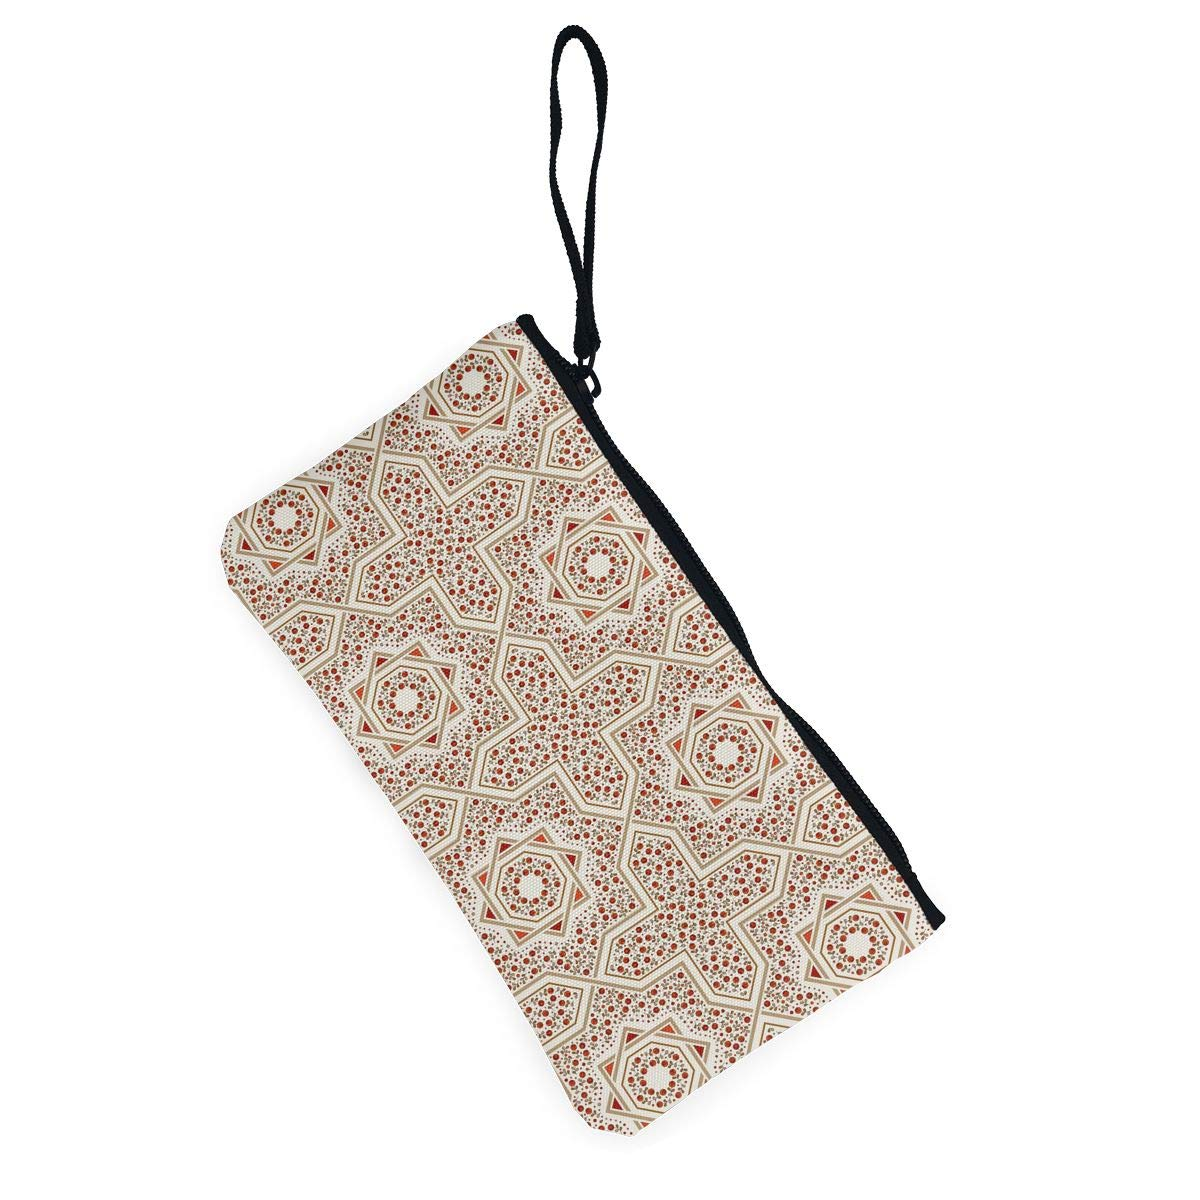 Zipper Small Purse Wallets Cellphone Clutch Purse With Wrist Strap Patterned Floor Tile Pattern Womens Canvas Coin Wallet